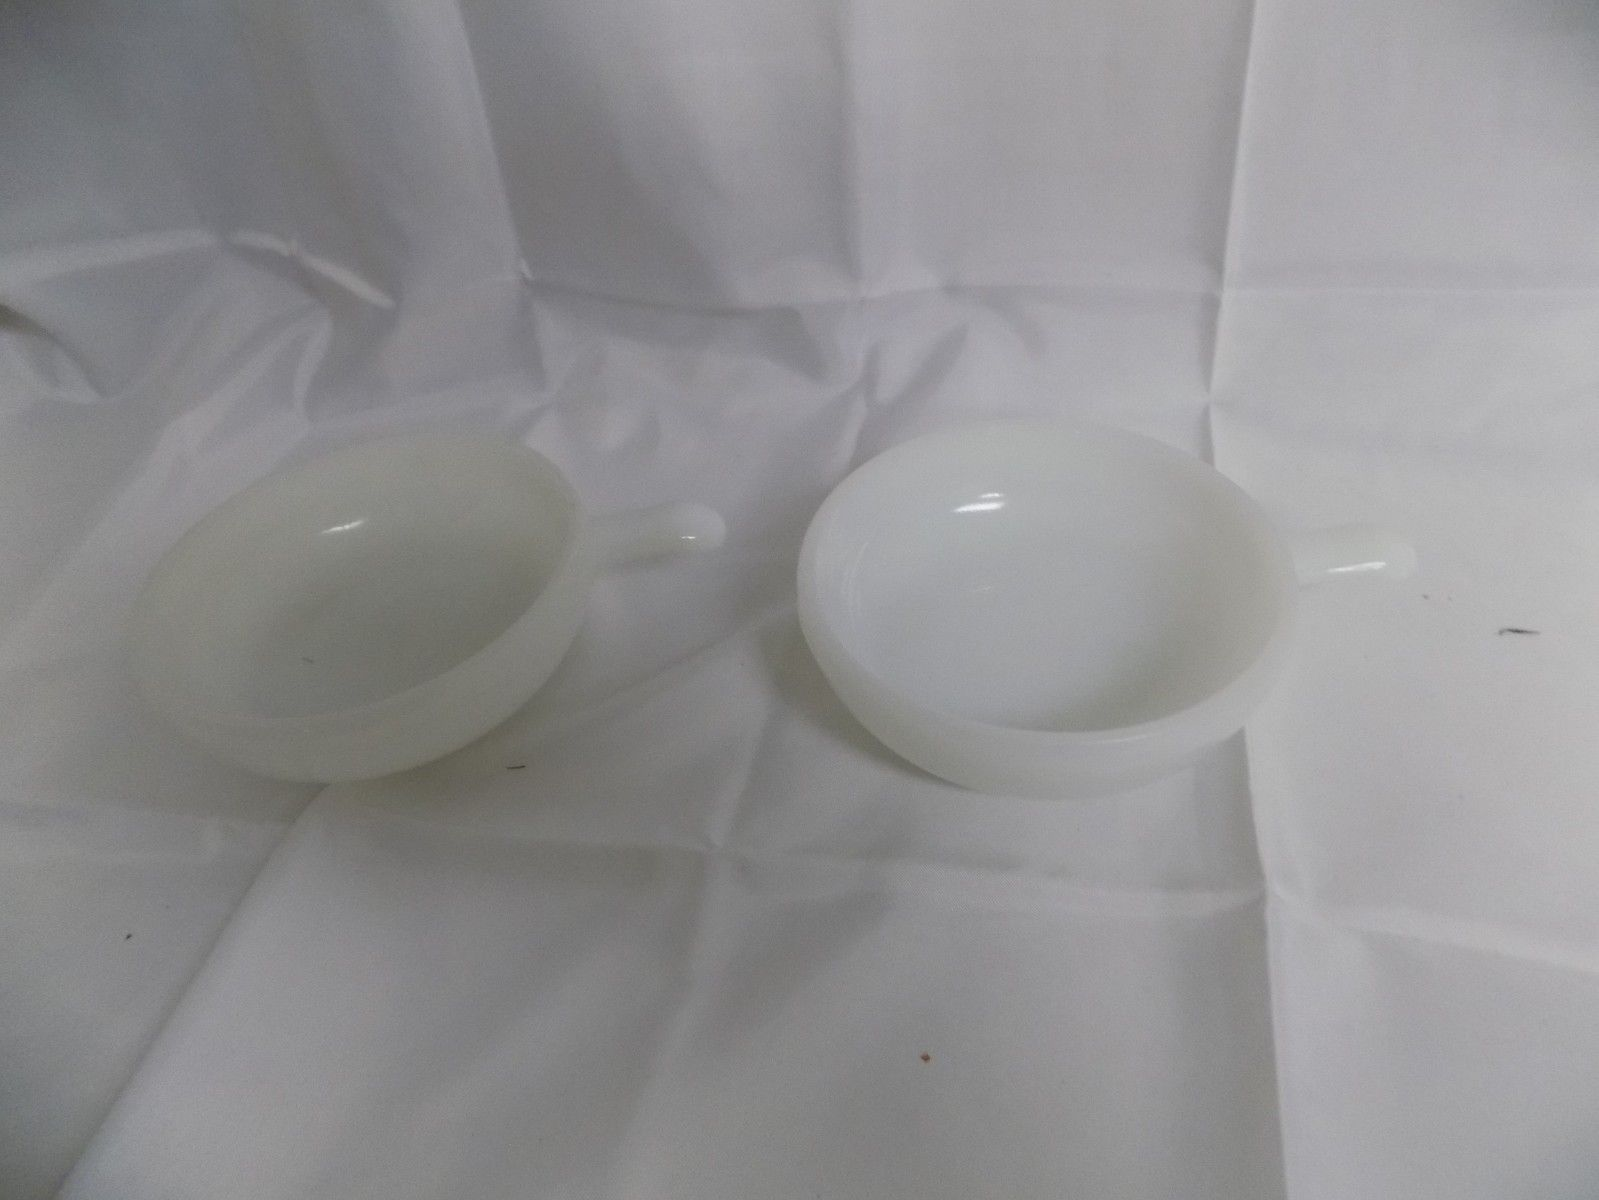 LOT OF 2 VINTAGE GLASBAKE WHITE MILK GLASS SOUP BOWL W/ HANDLE #J2663 11OZ